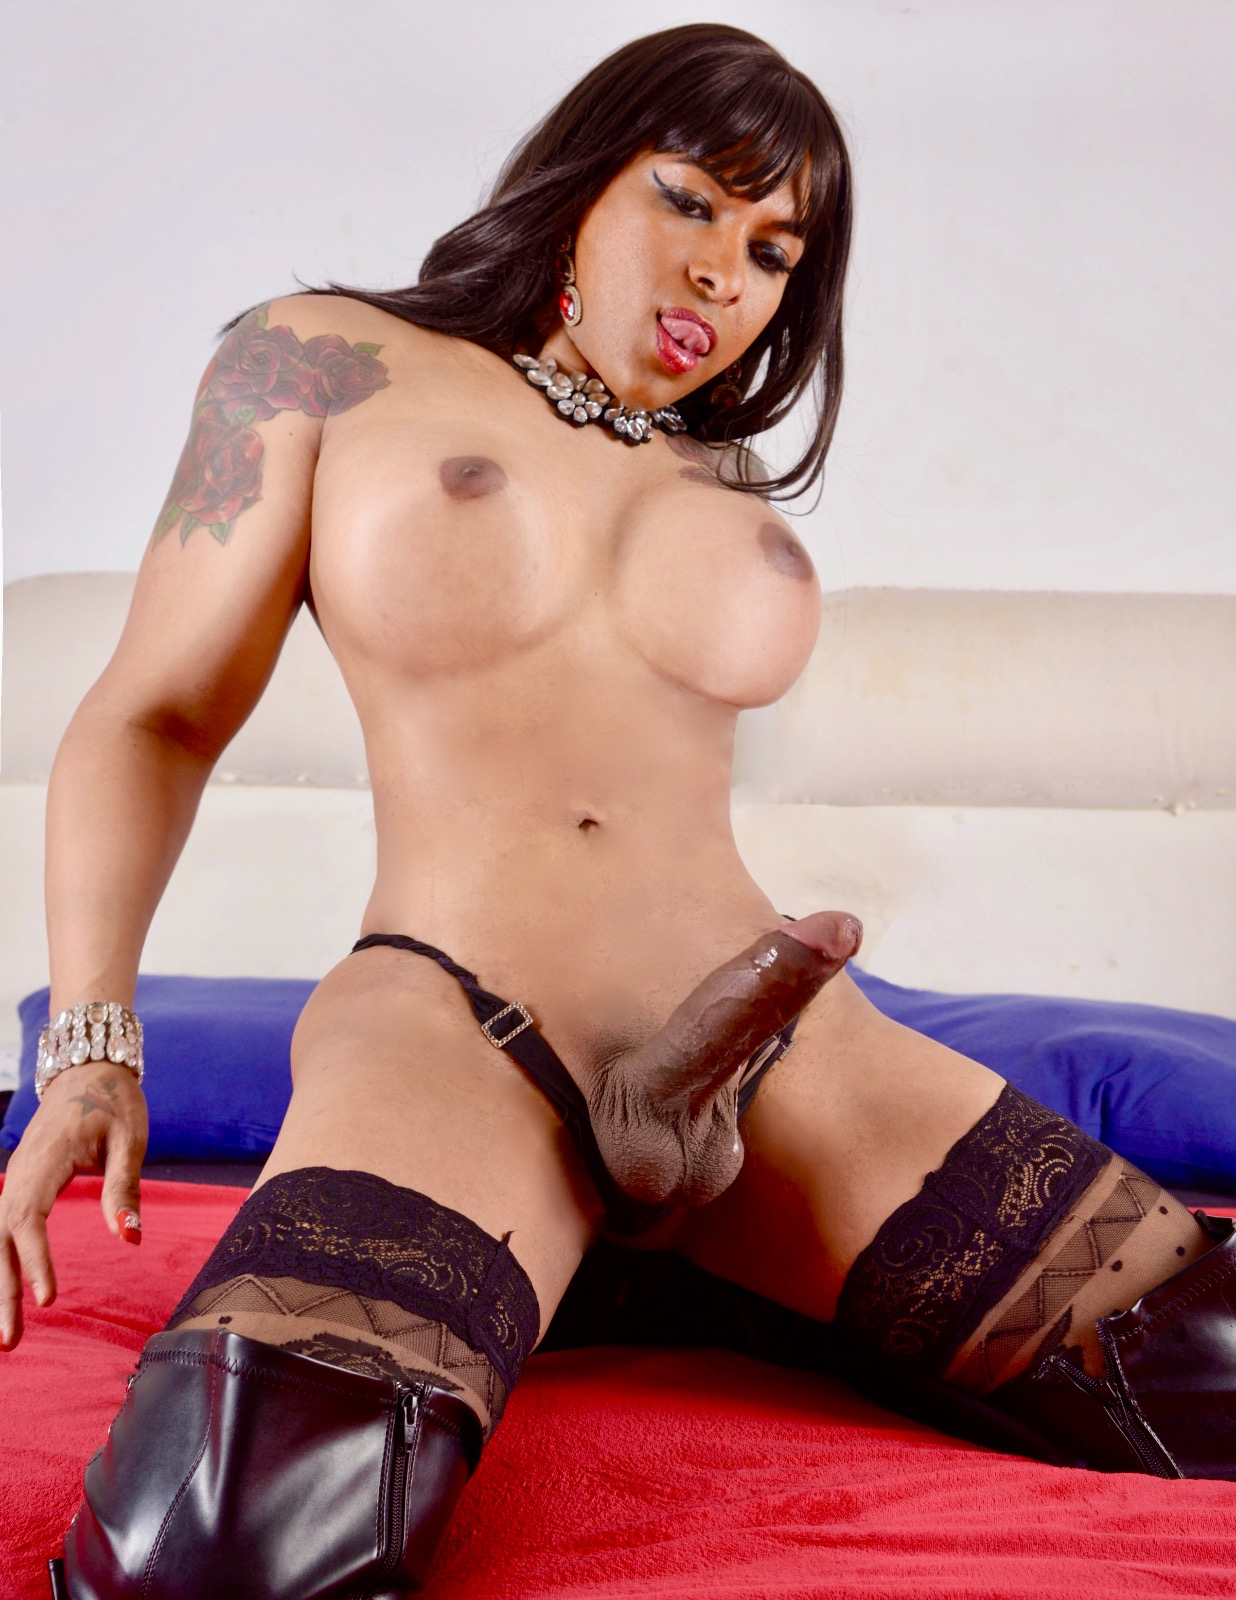 Lovely lady from the orient is so beautiful and exotic 3